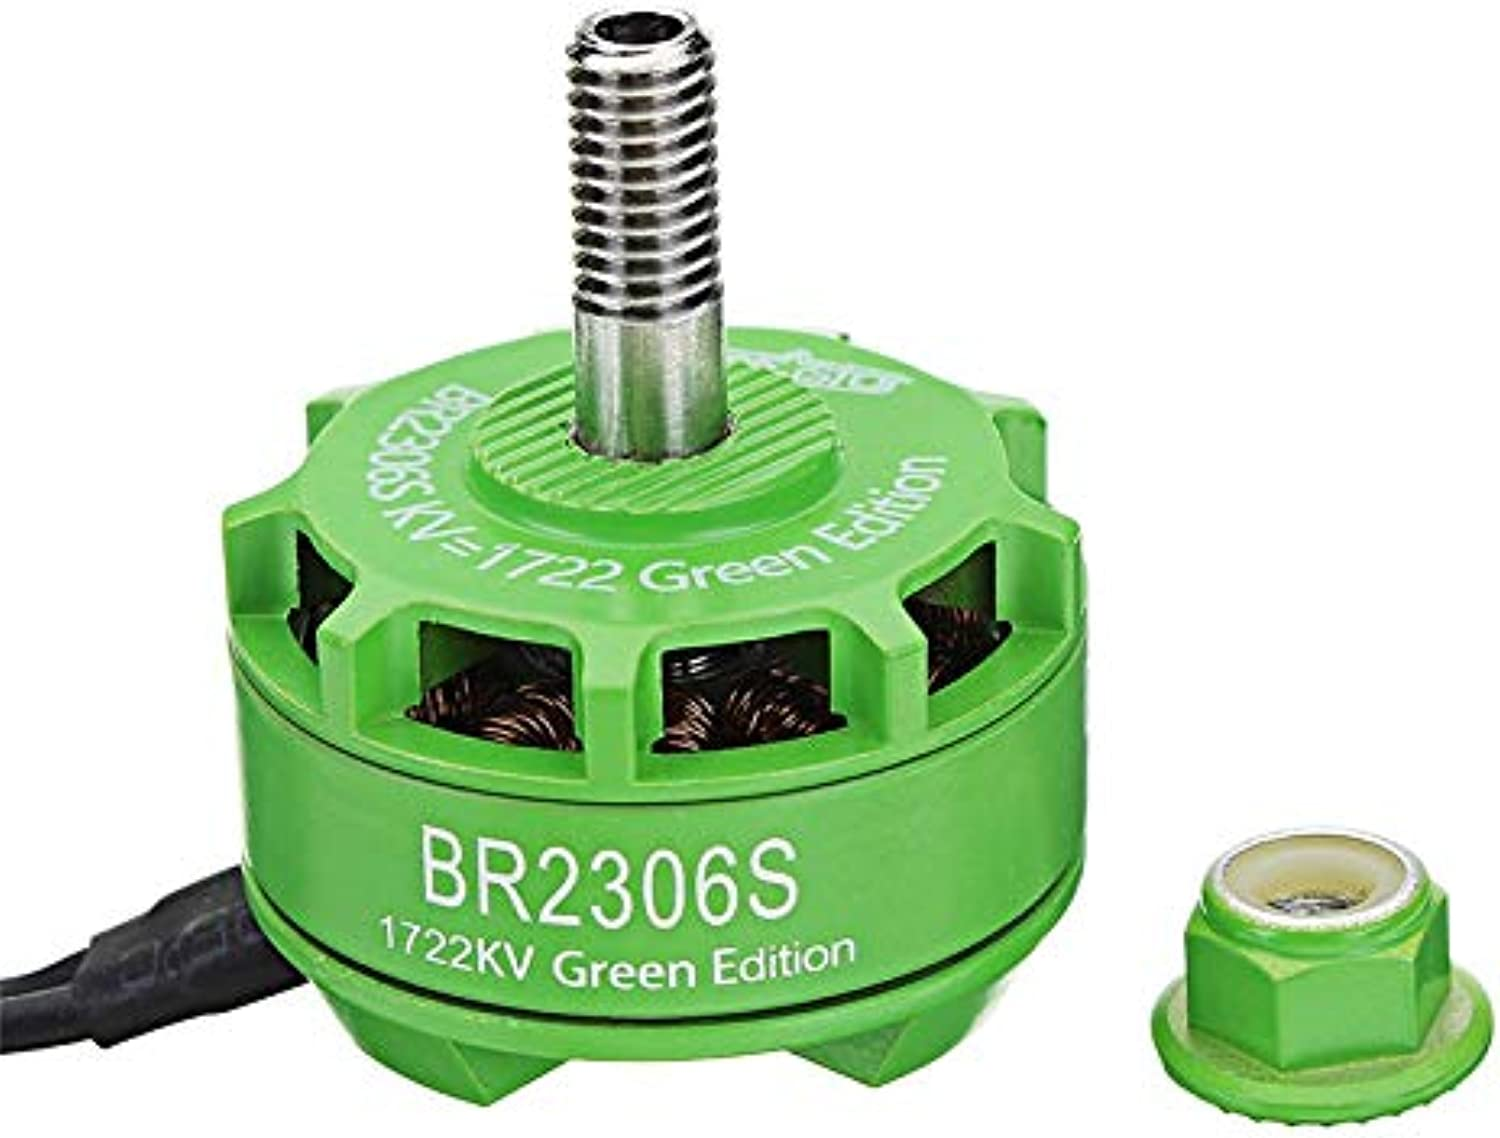 Generic Racerstar 2306 BR2306S Green Edition 1722KV Brushless Motor 46S for RC Drone FPV Racing Multi redor Accs